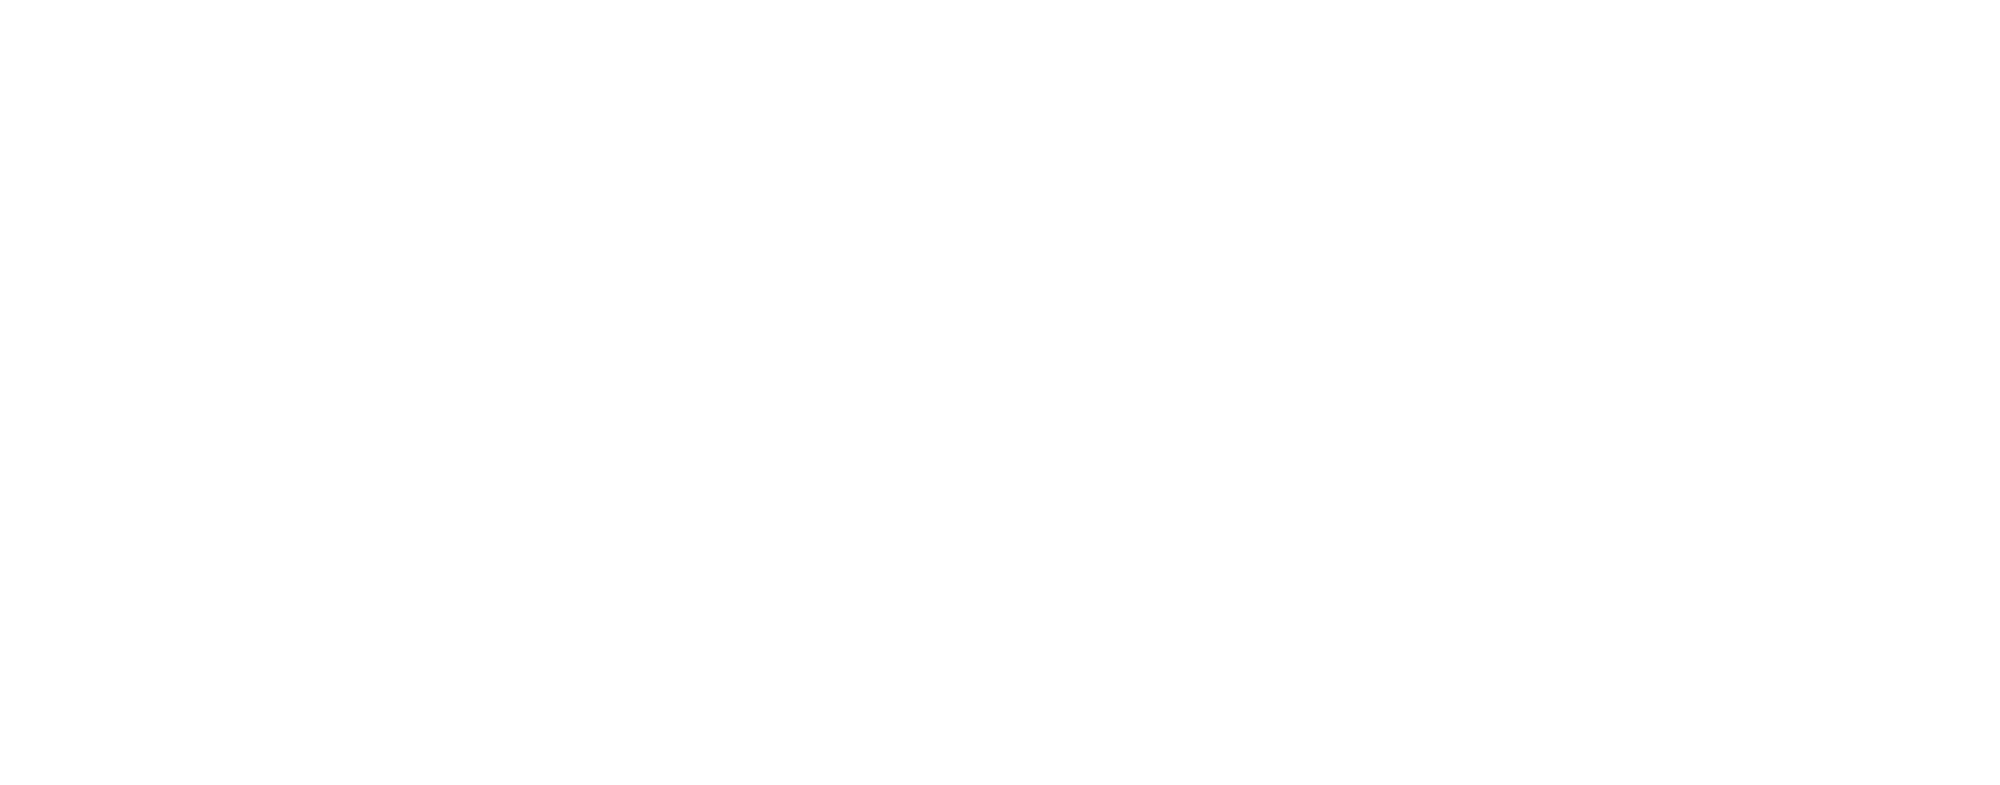 Dawna's Birth Services-logo-white (1).png